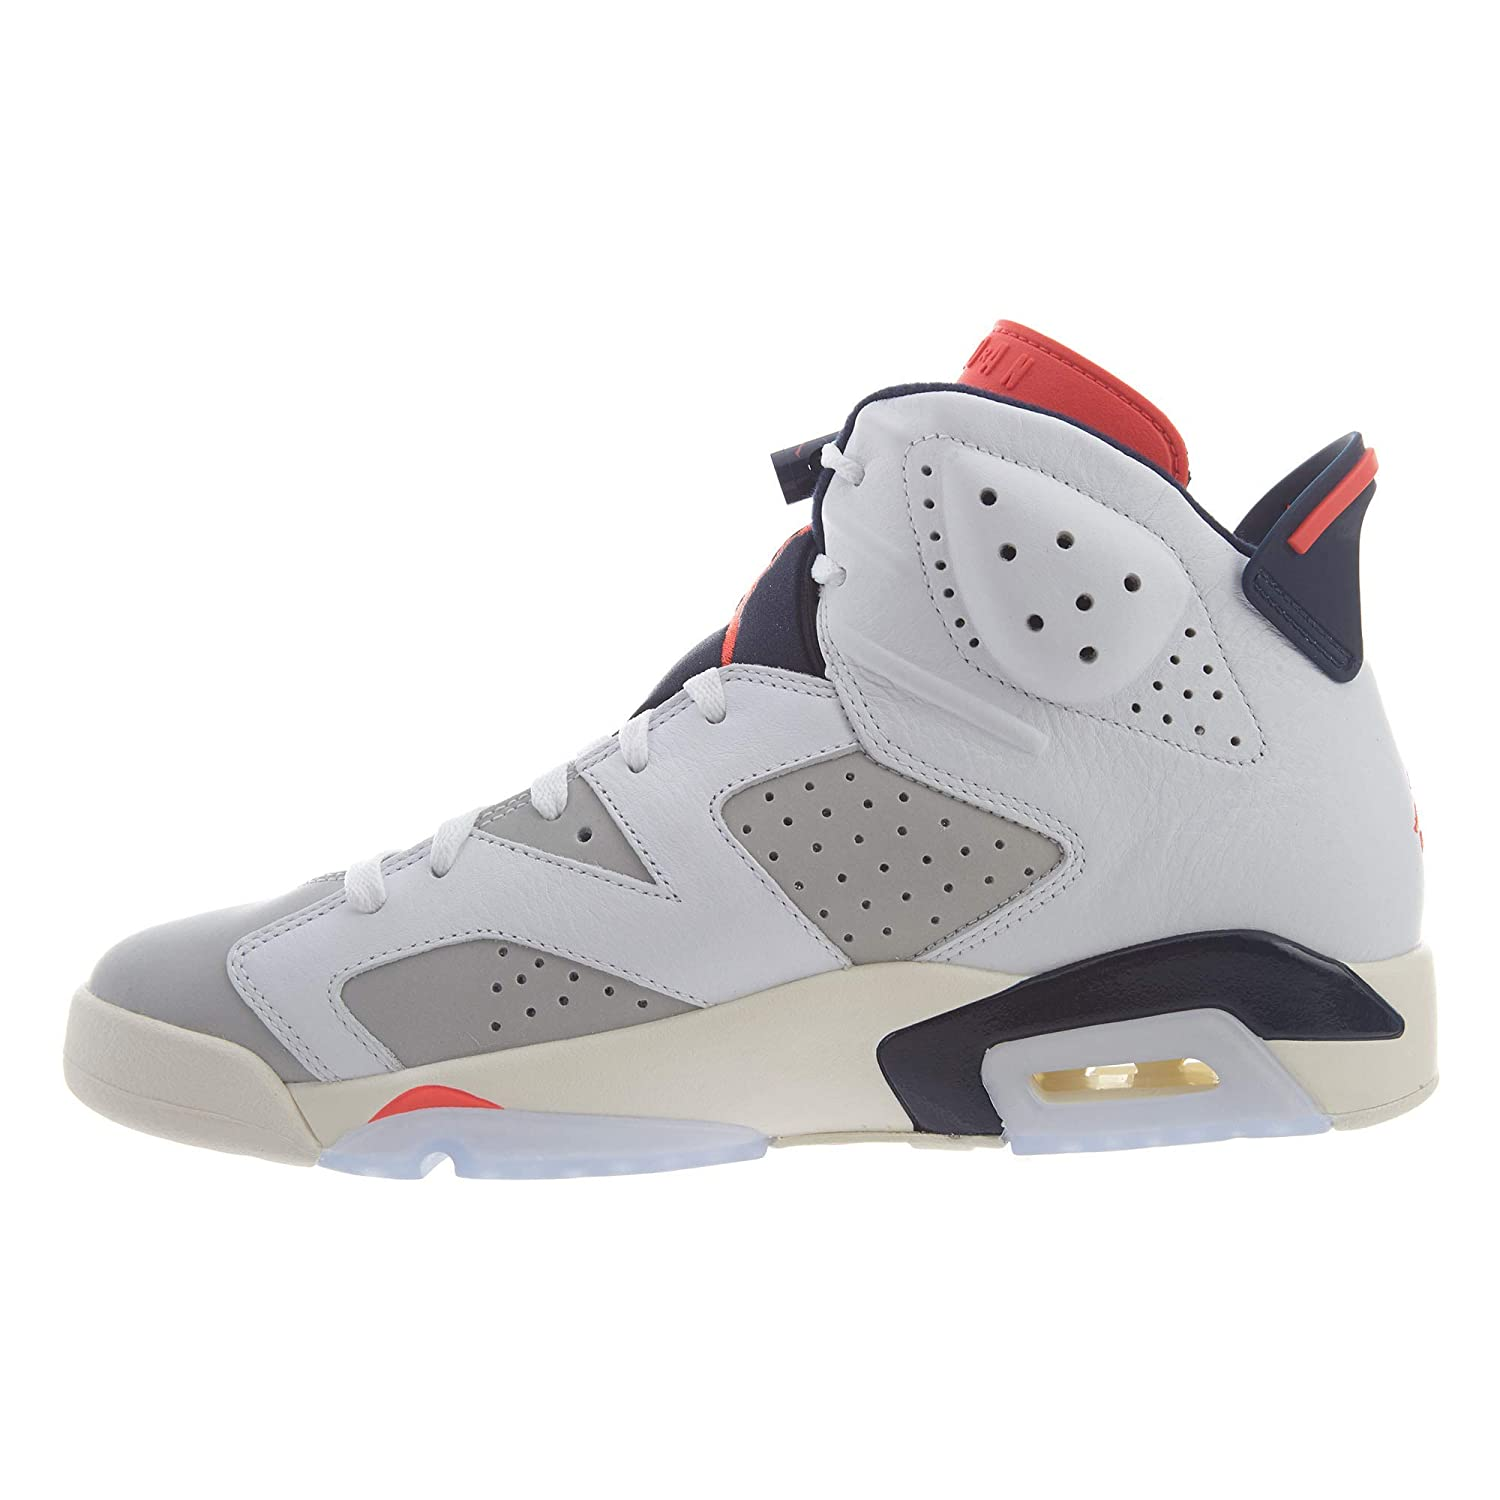 big sale b9d1b 20ab4 Jordan 6 Retro Tinker White/Infrared 23-Neutral Grey (13 D(M) US)